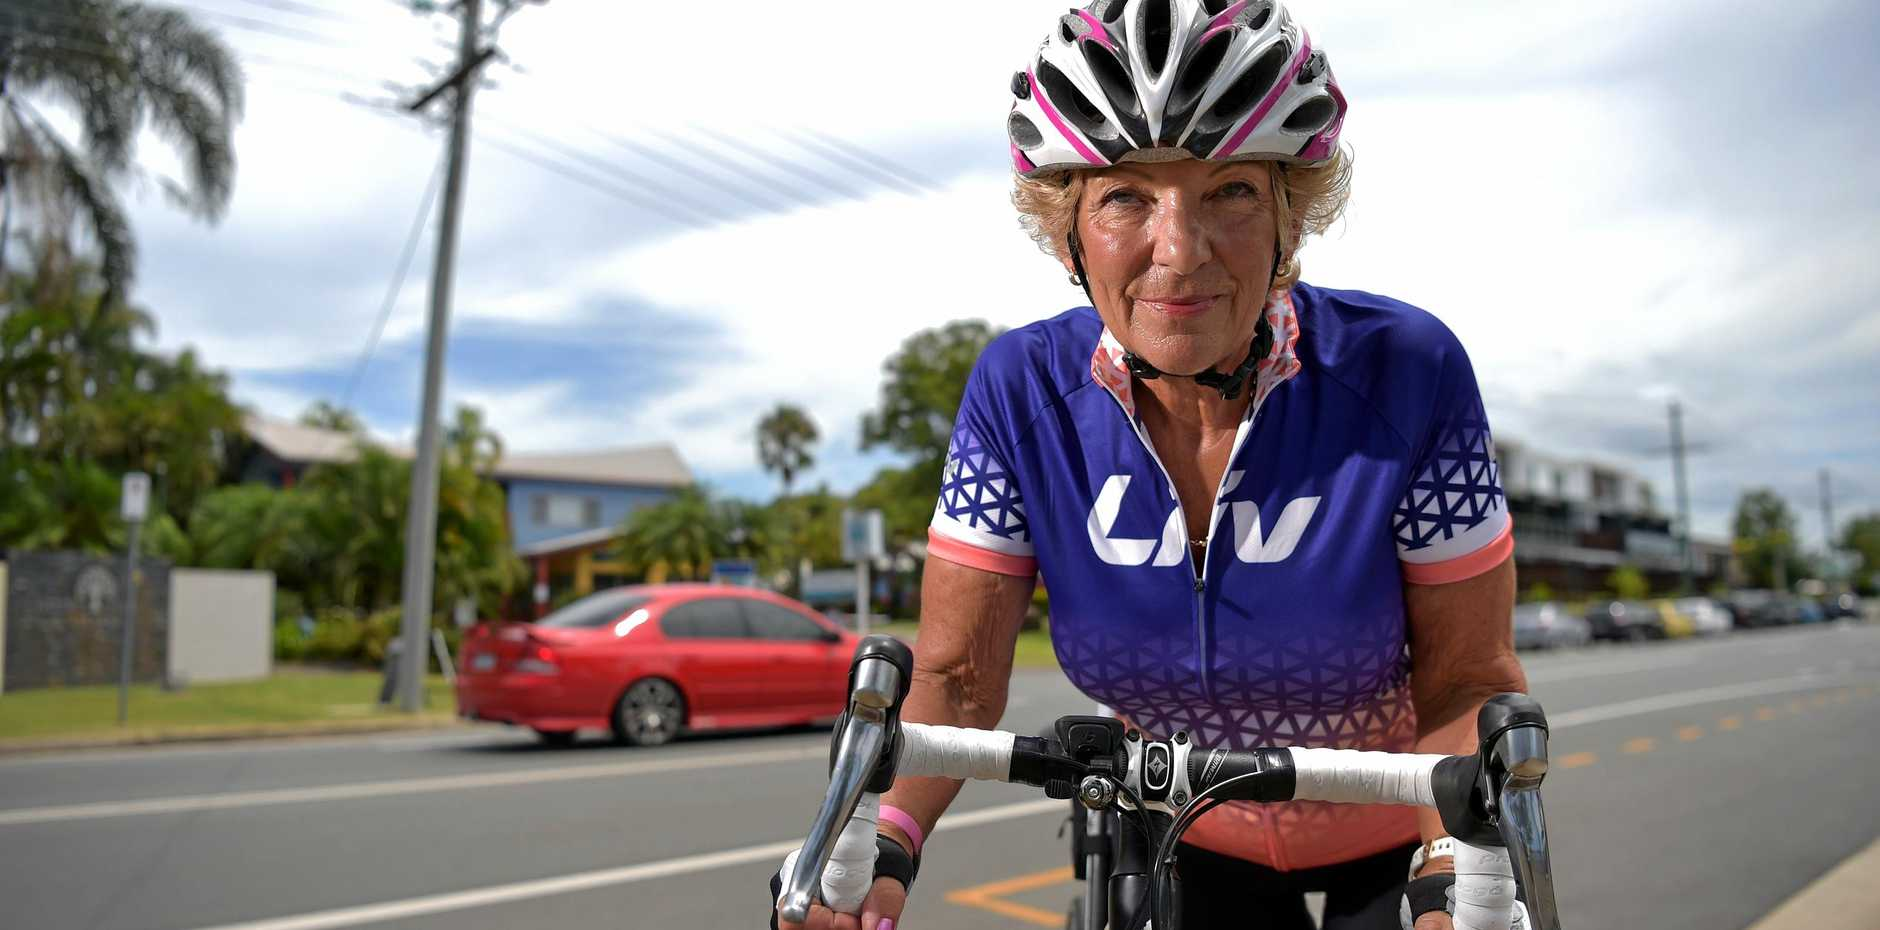 LIVING DANGEROUSLY: Cyclist Sue Donelly shares her experiences of riding on Sunshine Coast roads.